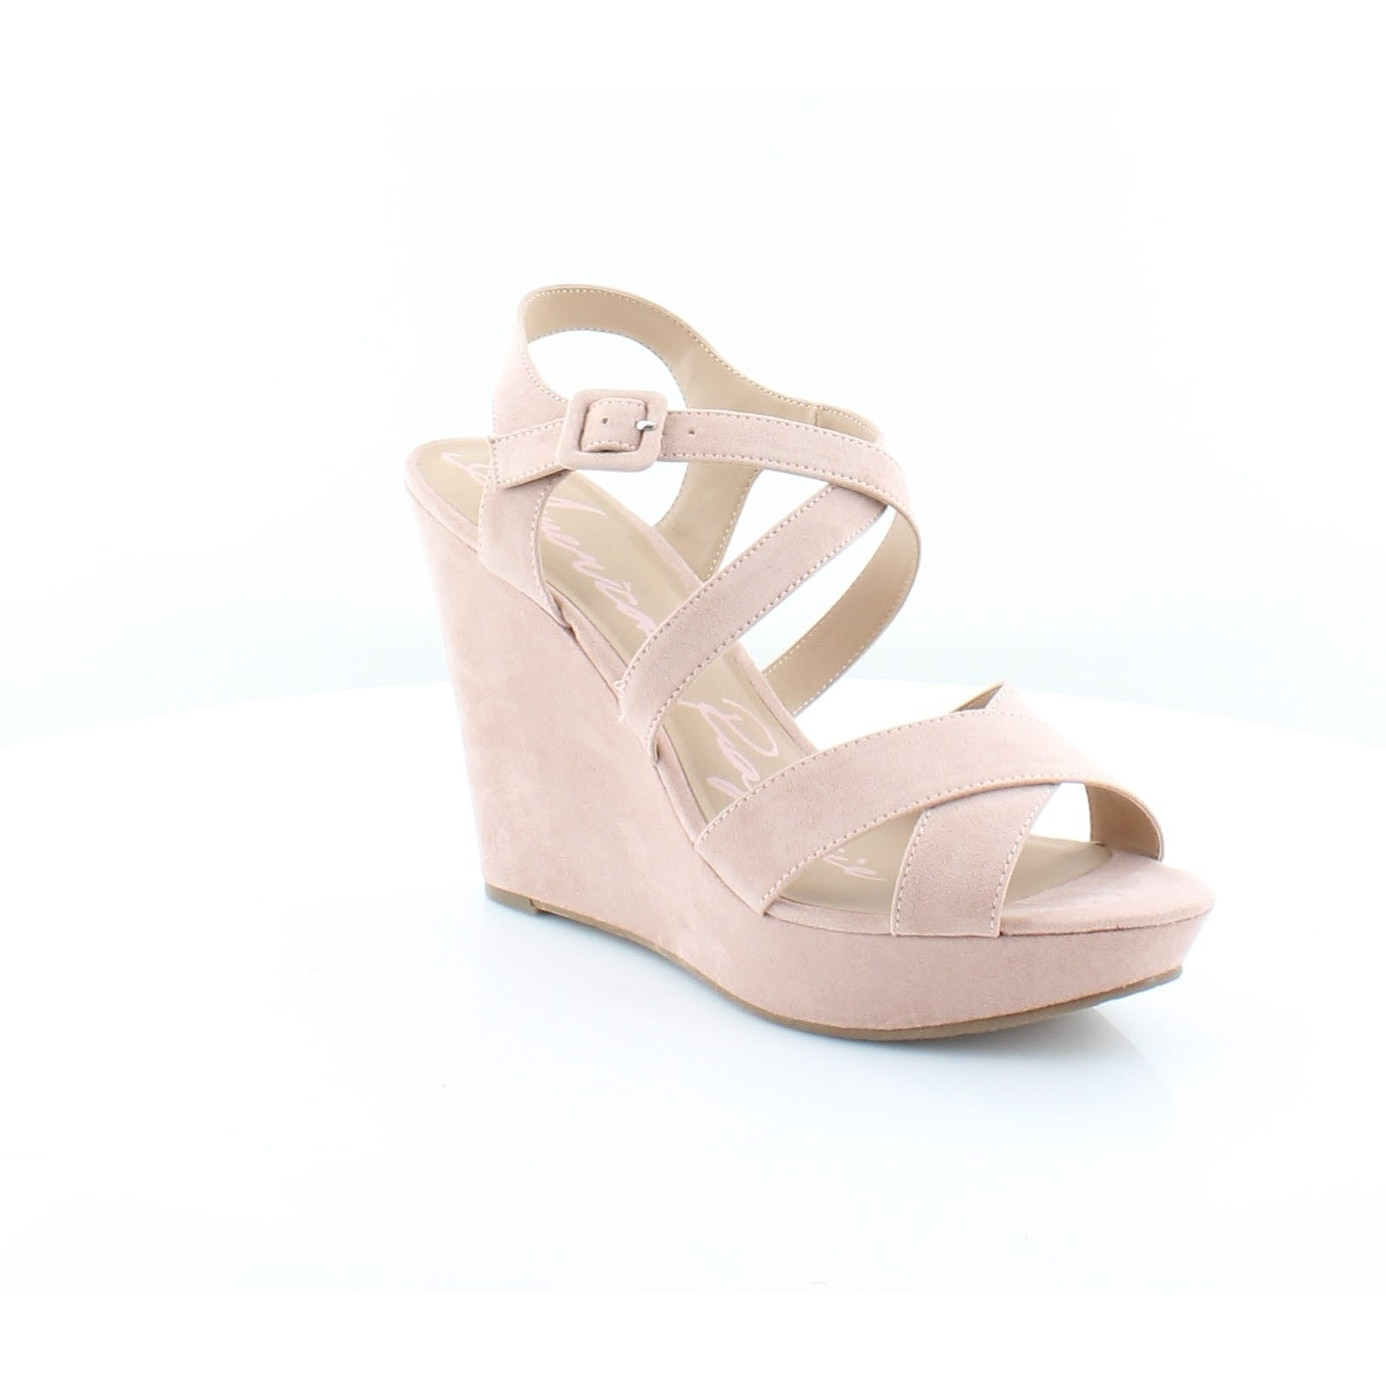 53cd10f5a2c Buy Size 9.5 American Rag Women s Sandals Online at Overstock